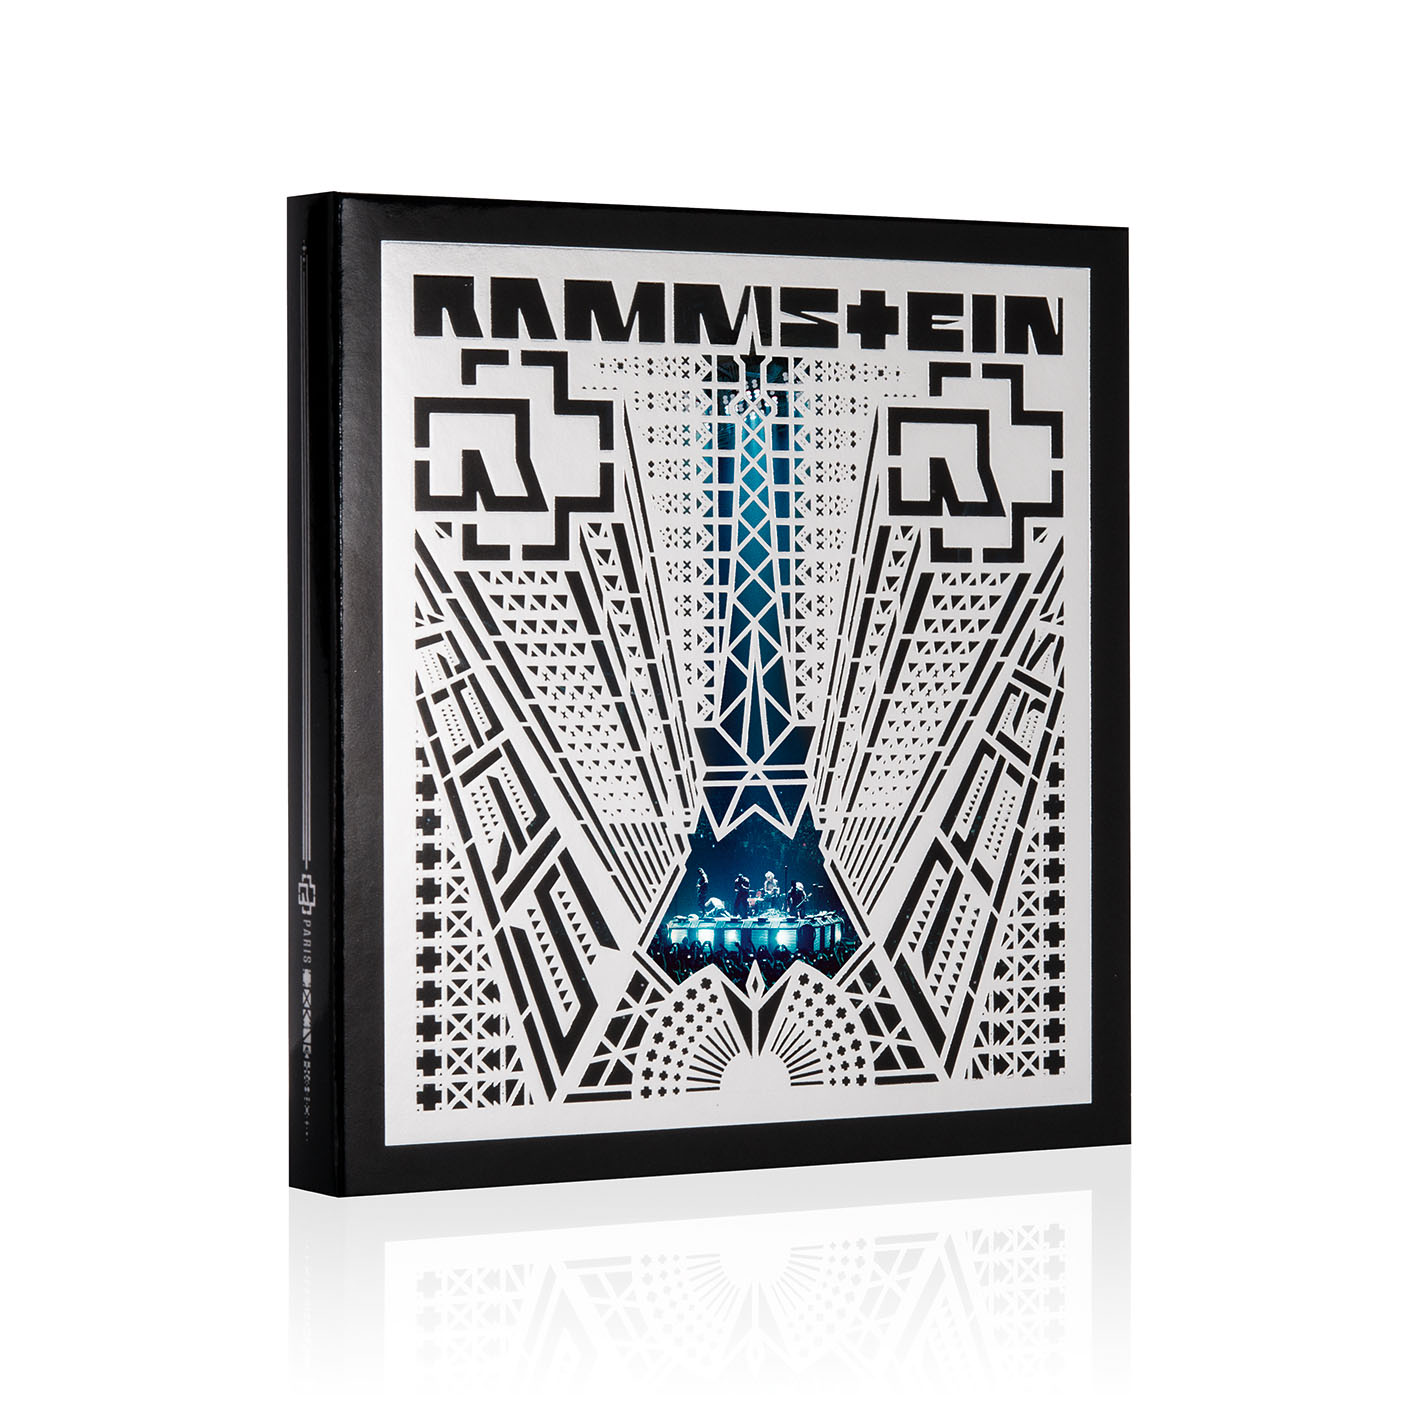 Rammstein Rammstein. Paris (2 CD) видео фильм бел